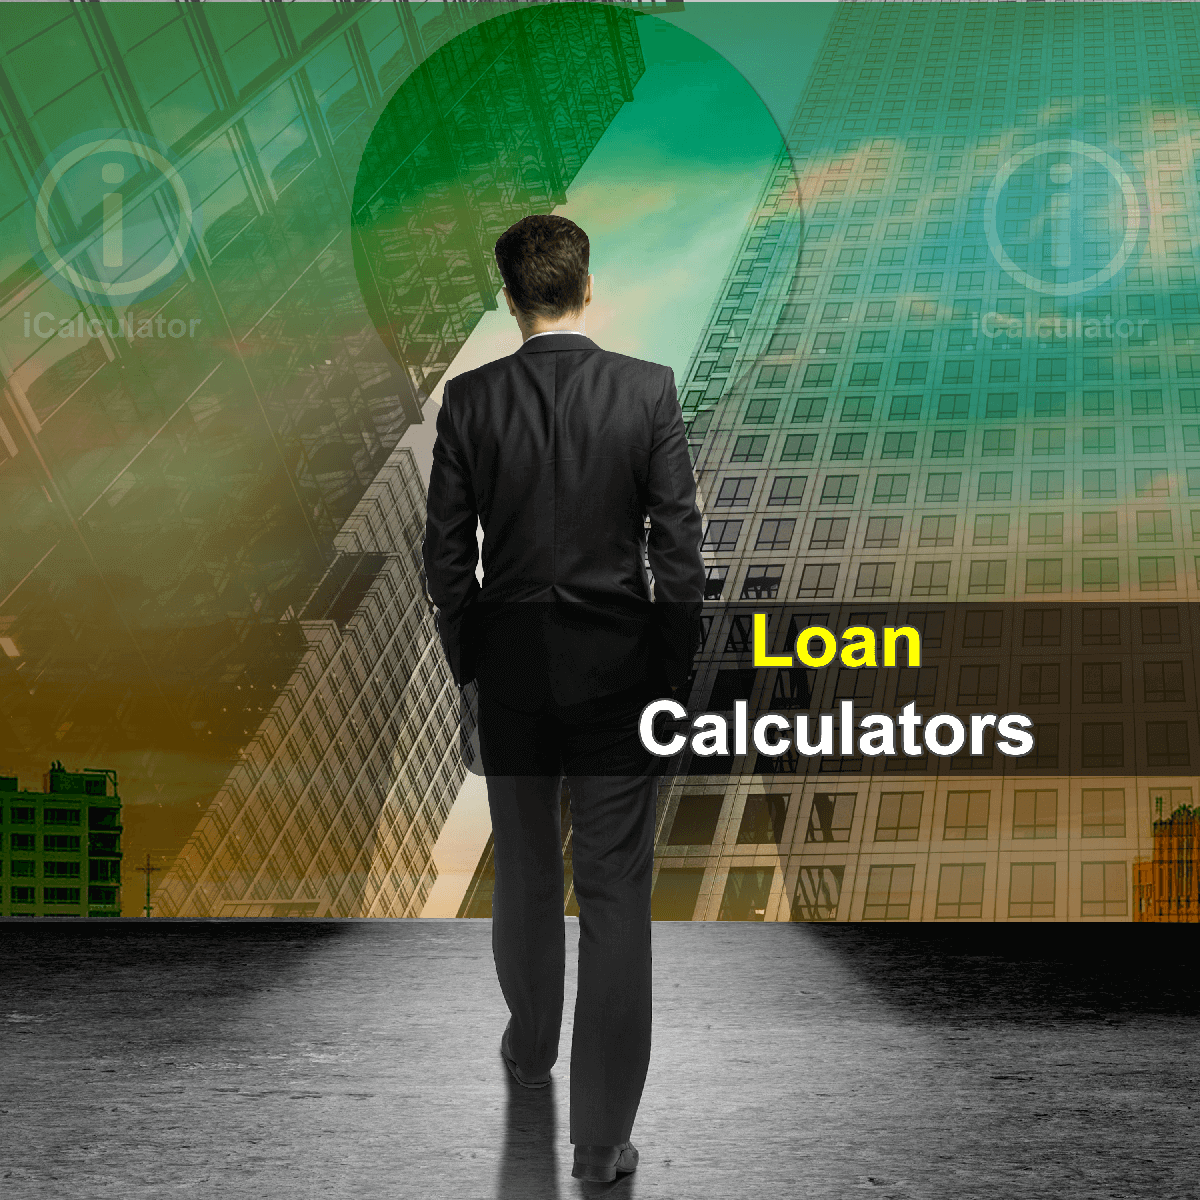 Loan Calculators. This image shows a student considering the merits of taking a loan to support their finances whilst at university using the loan calculators provided by iCalculator.